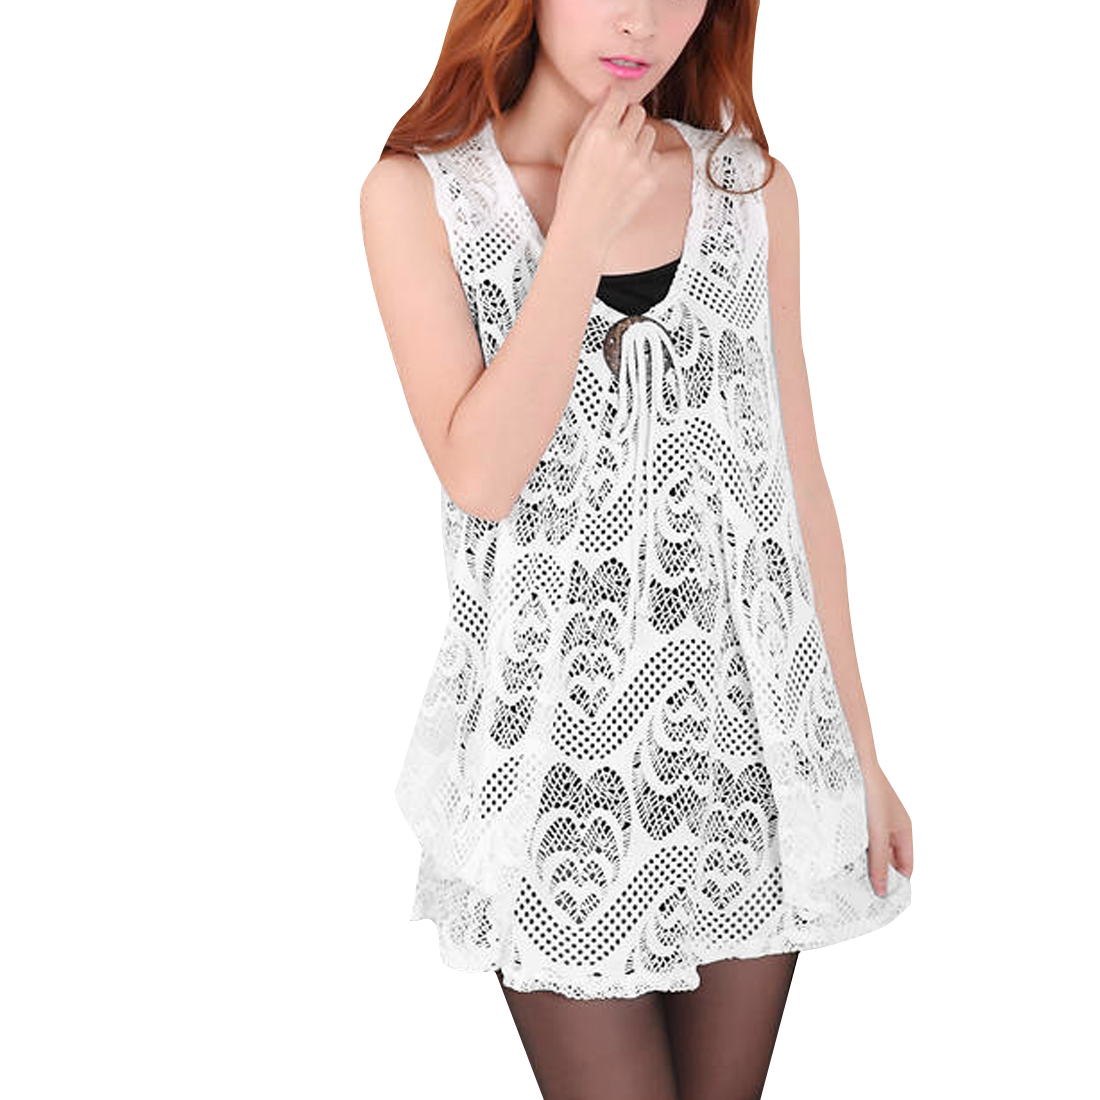 Women Sleeveless Lace Top Shirt & Stretchy Tank Top White XS